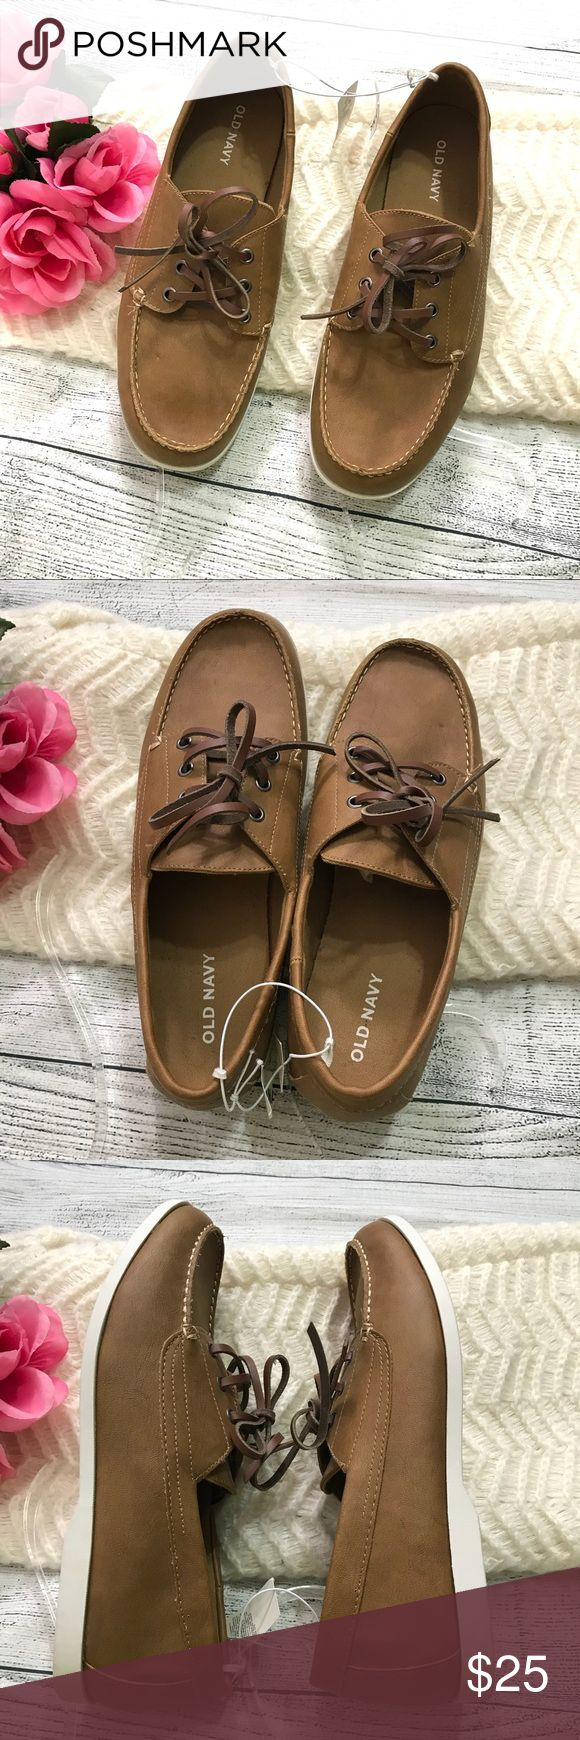 Old Navy Brown Boat Shoes Brand New Sz 10 Old Navy Brown Boat Shoes Brand New Sz 10  New with tags Old Navy Shoes Boat Shoes